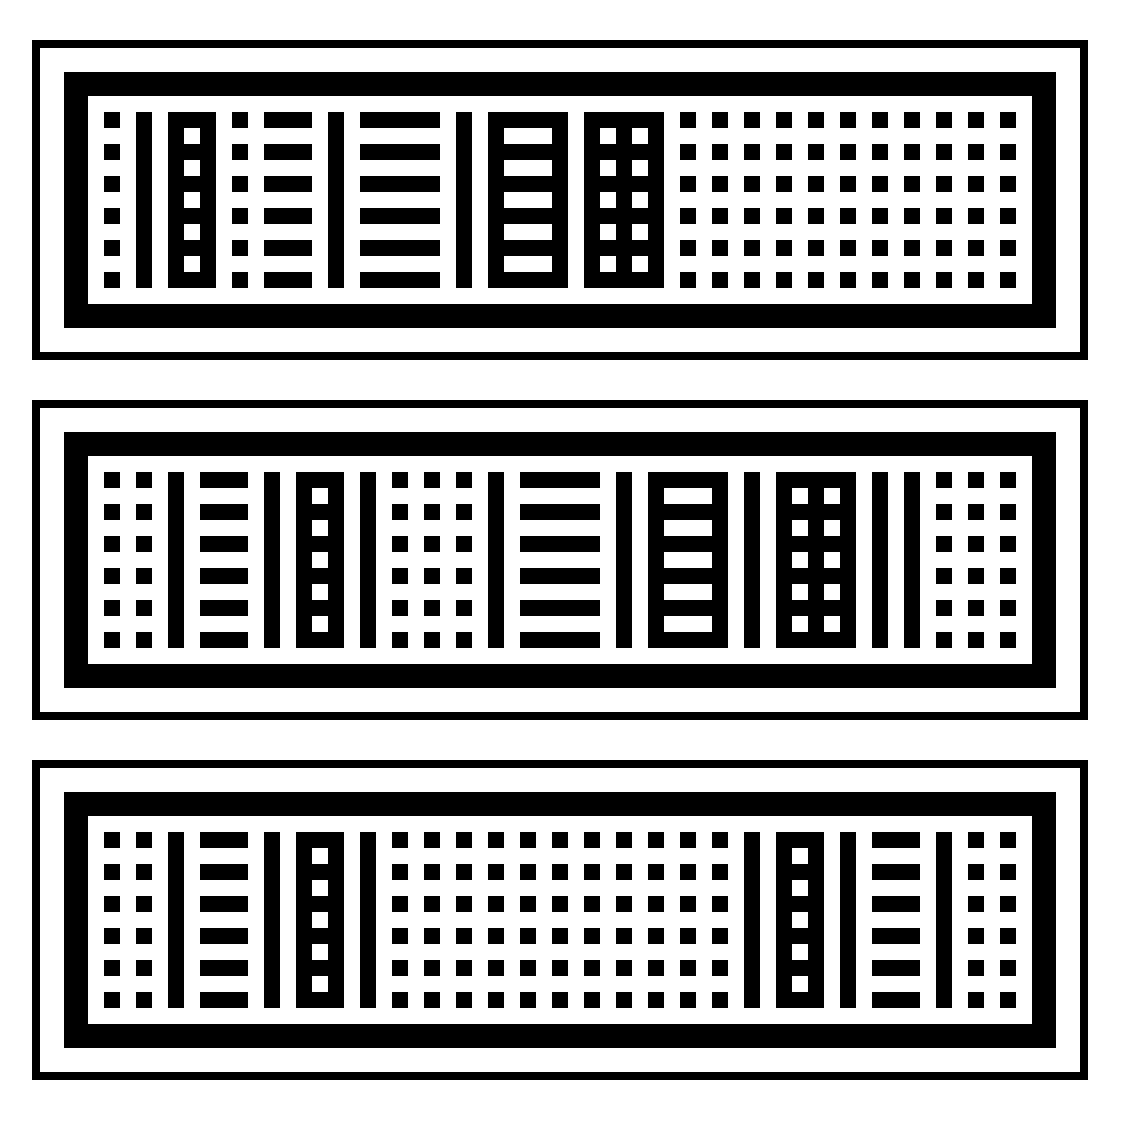 Dotgrid digital sketches in black and white, showing various combinations of lines and dots.